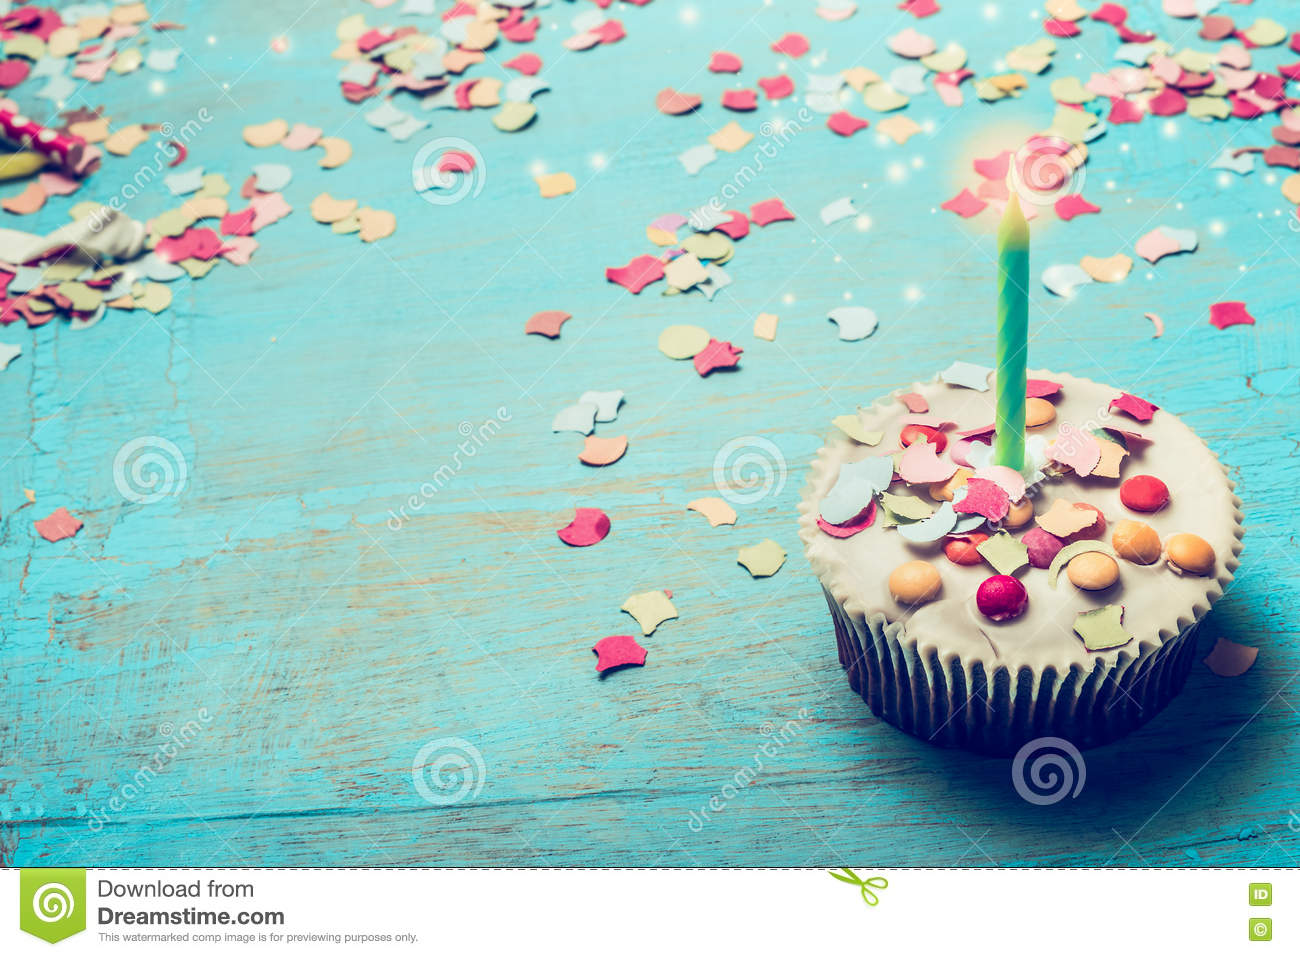 Download Birthday Cake With Candle And Confetti On Turquoise Blue Shabby Chic Wooden Background Stock